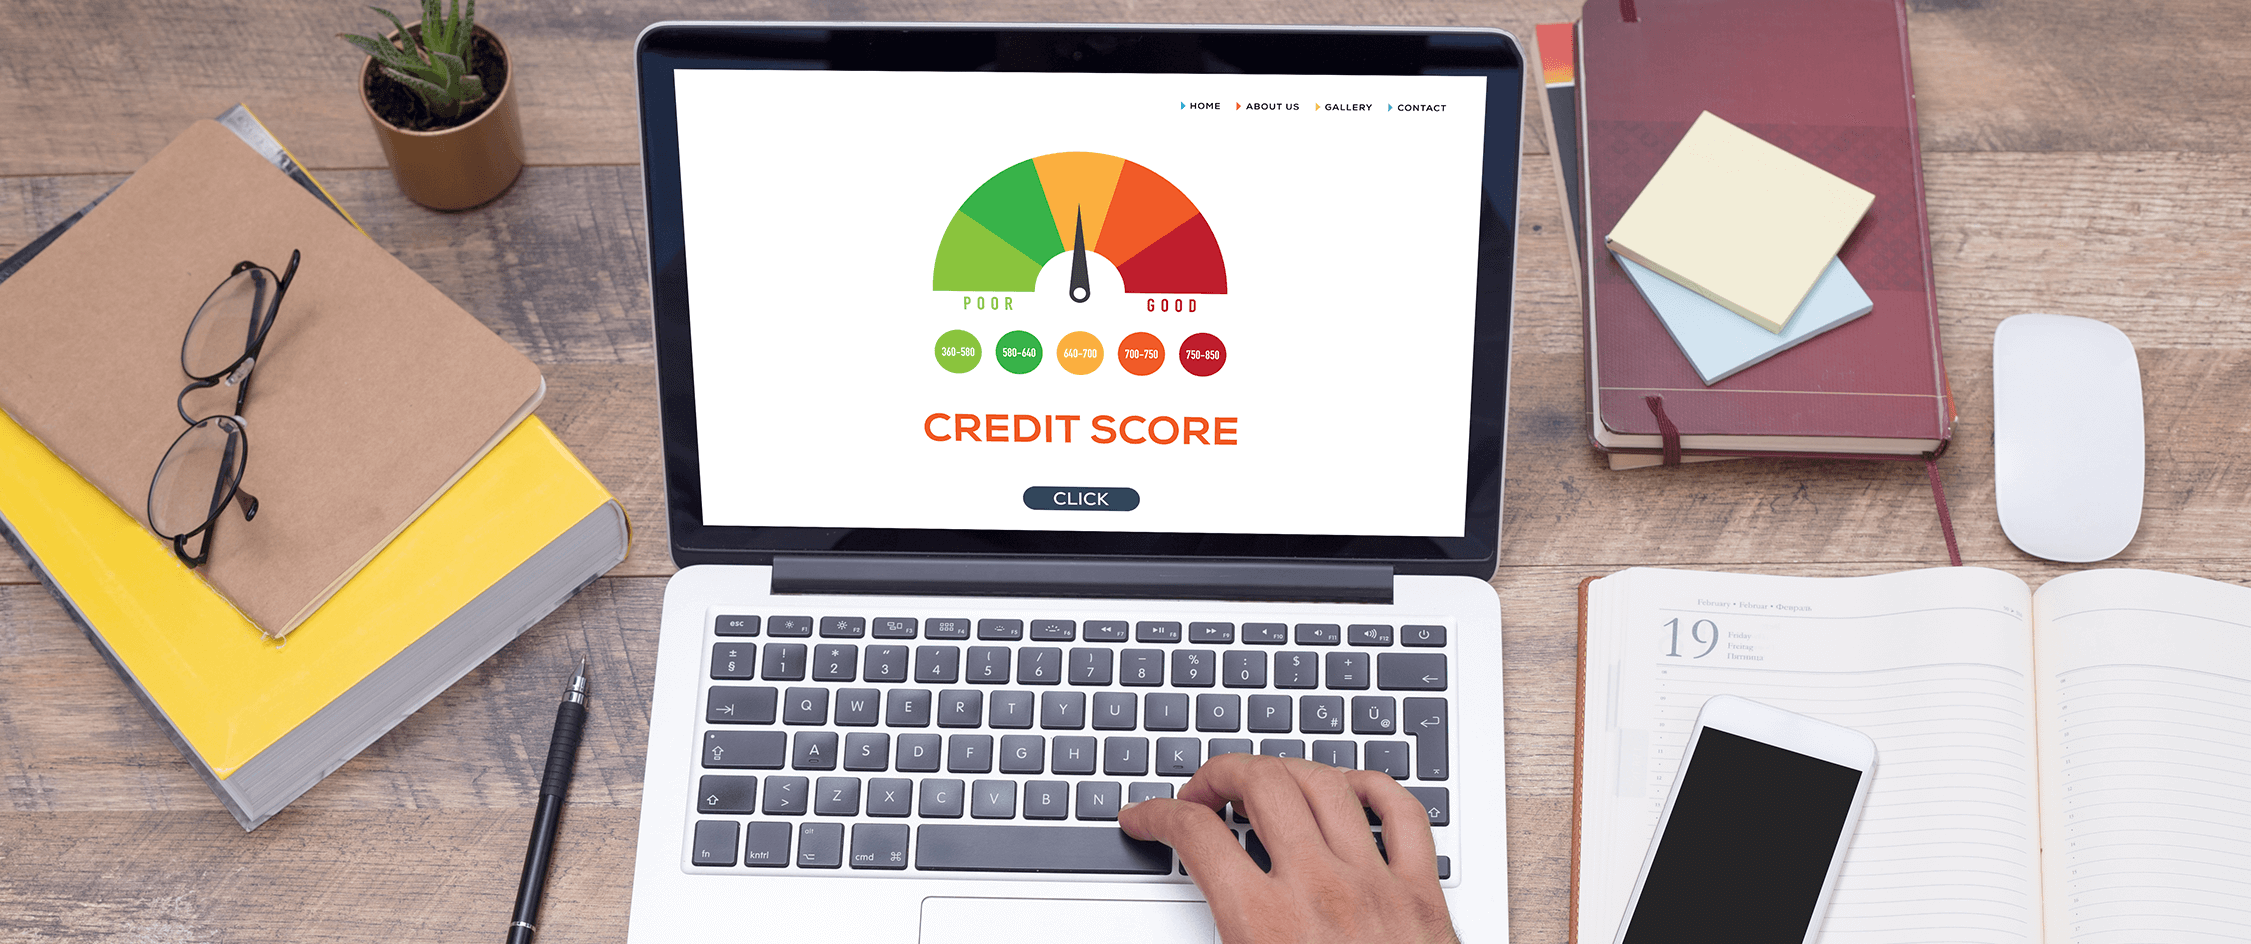 What impacts my credit score?